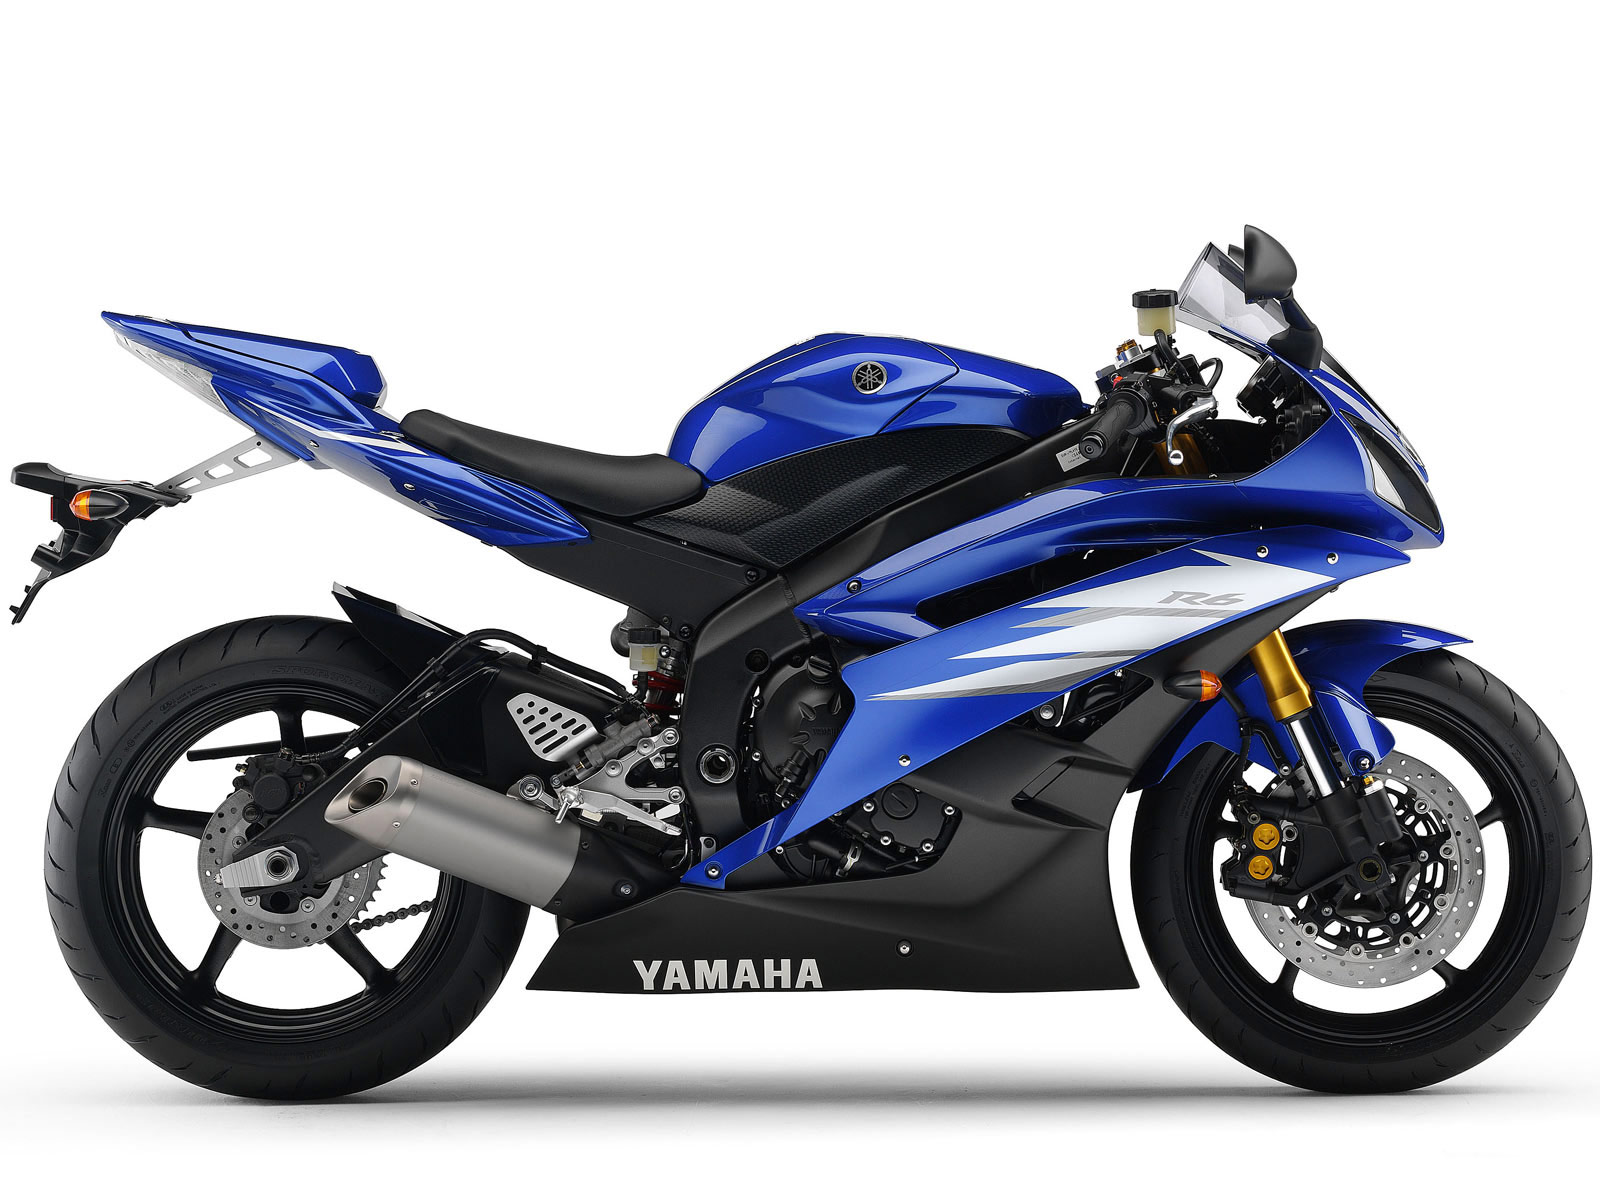 2006 Yamaha Yzf R6 Motorcycle Pictures And Specifications Super Moto And Sexy Girls